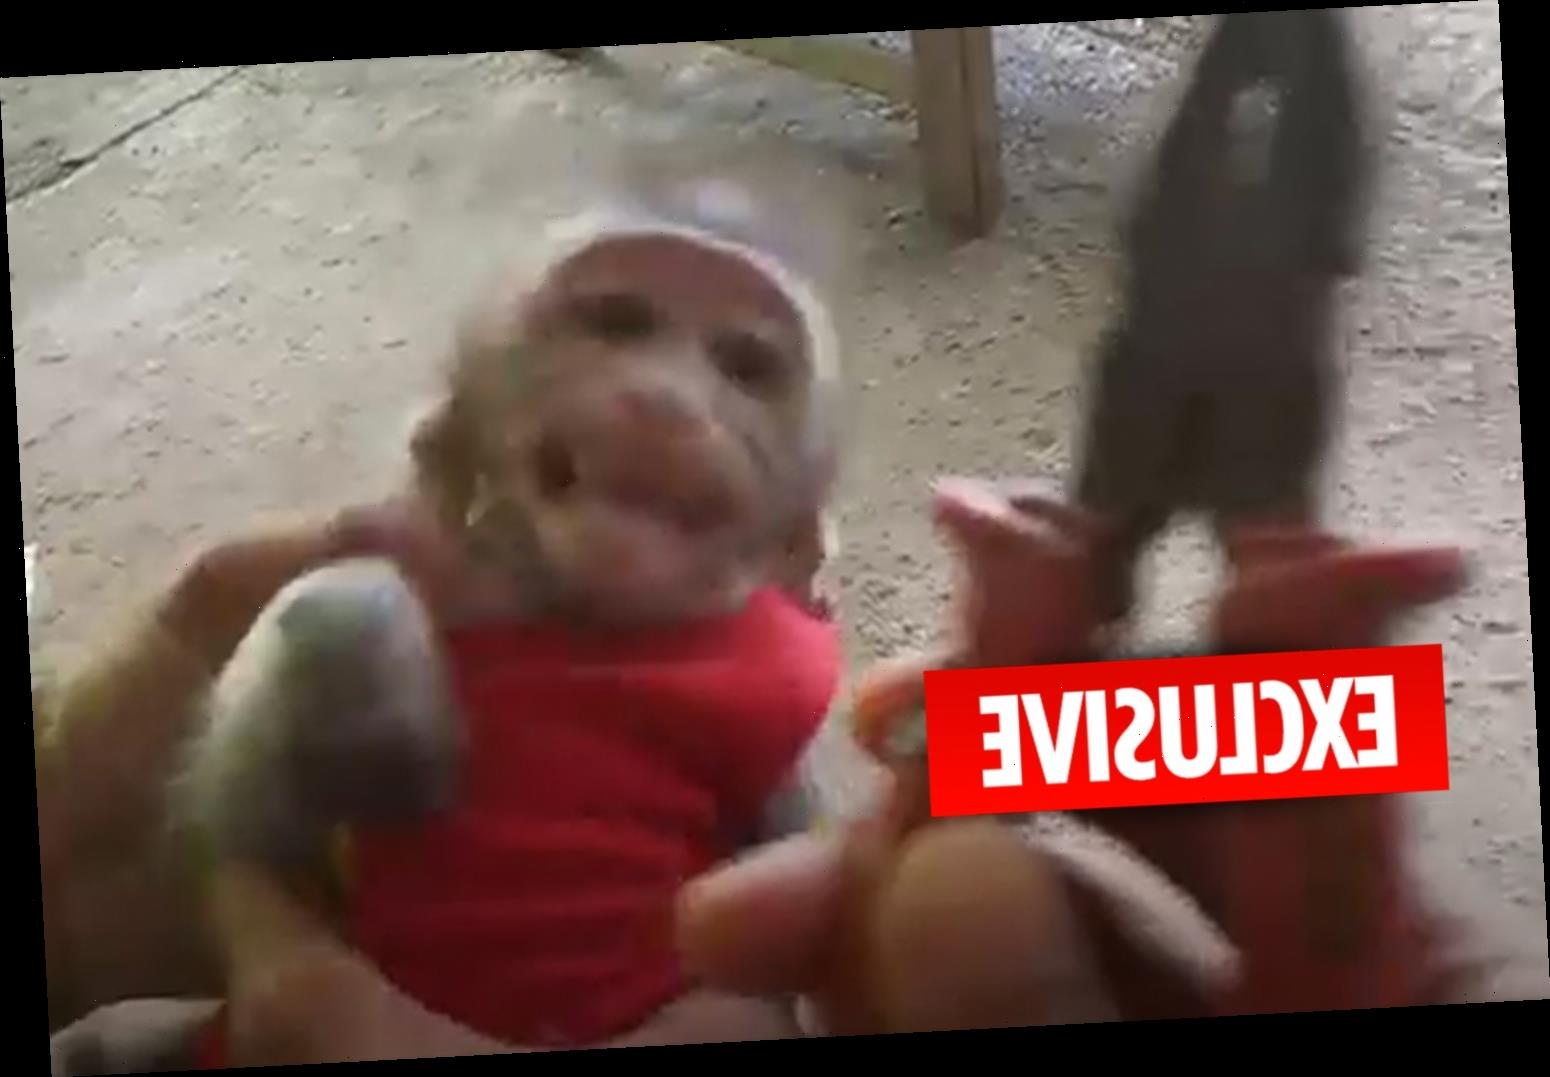 Adorable baby monkeys tortured, exploited and killed in sick YouTube snuff films for clicks